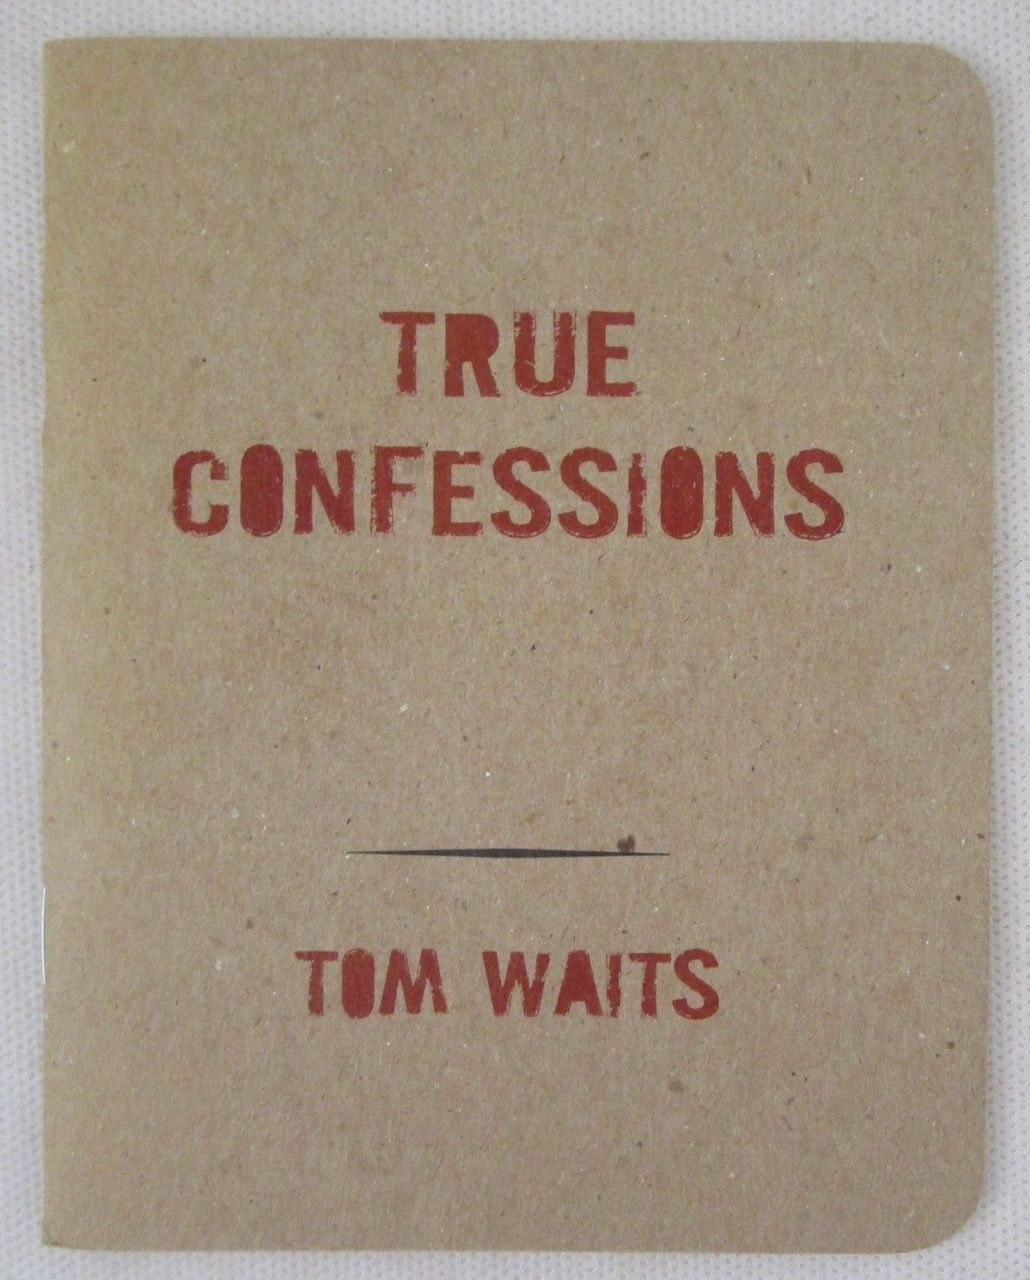 TRUE CONFESSIONS: A CONVERSATION WITH HIMSELF, by Tom Waits - 2008 [Ltd Ed 1/5000]